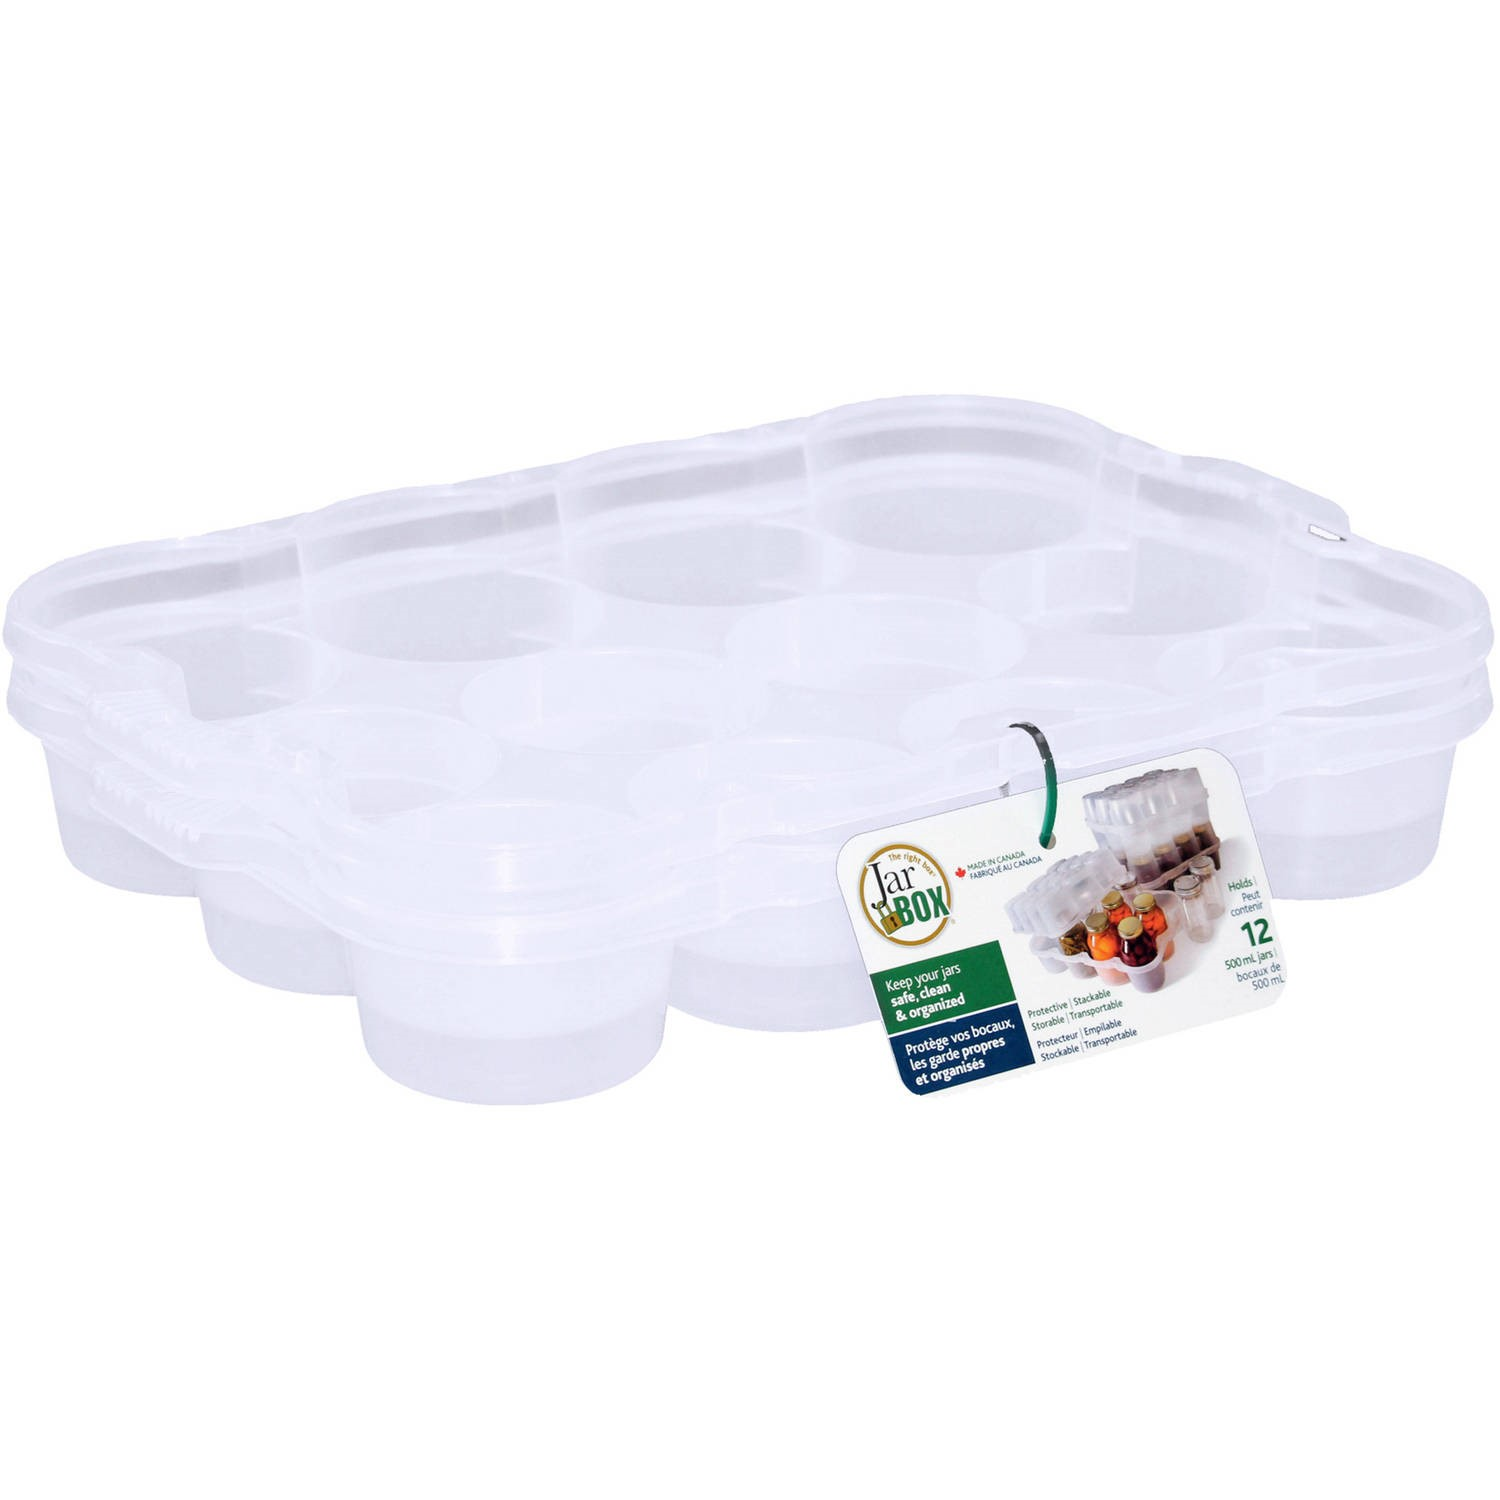 Click here to buy Accent Fairchild JarBox Canning Storage Box, Pint Size by Accent Fairchild.